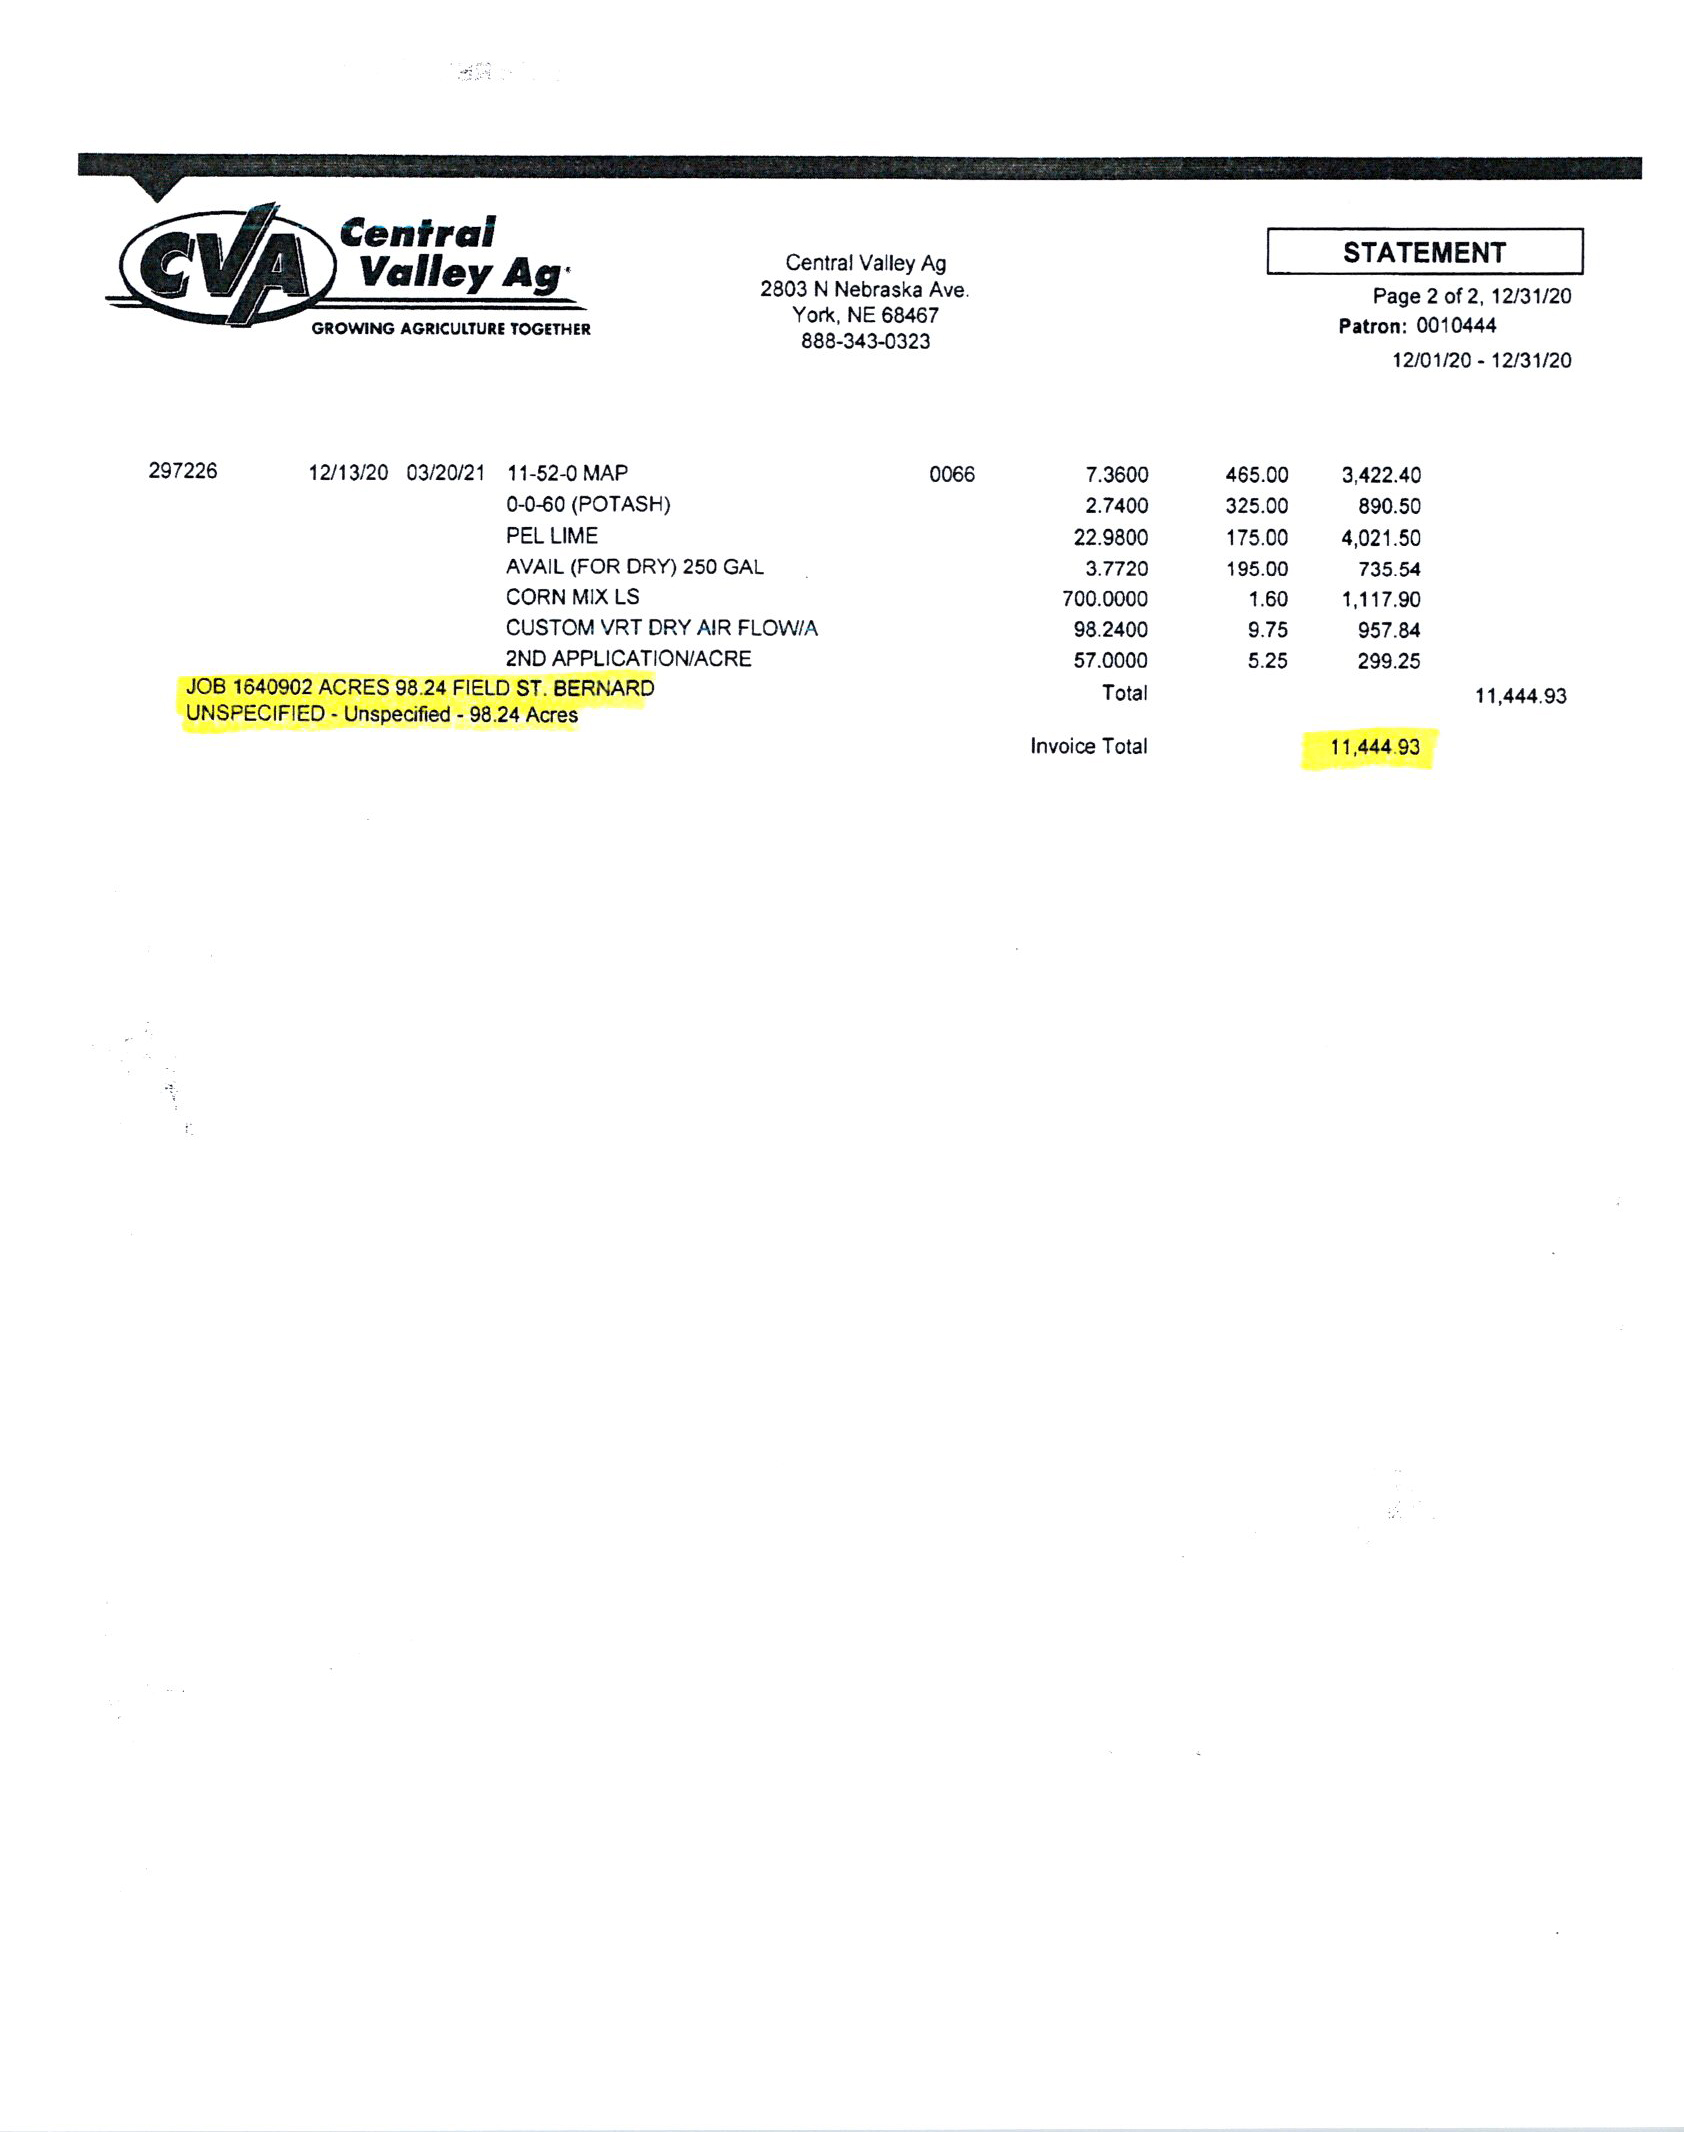 CVA Fertilizer Invoice BIR1078